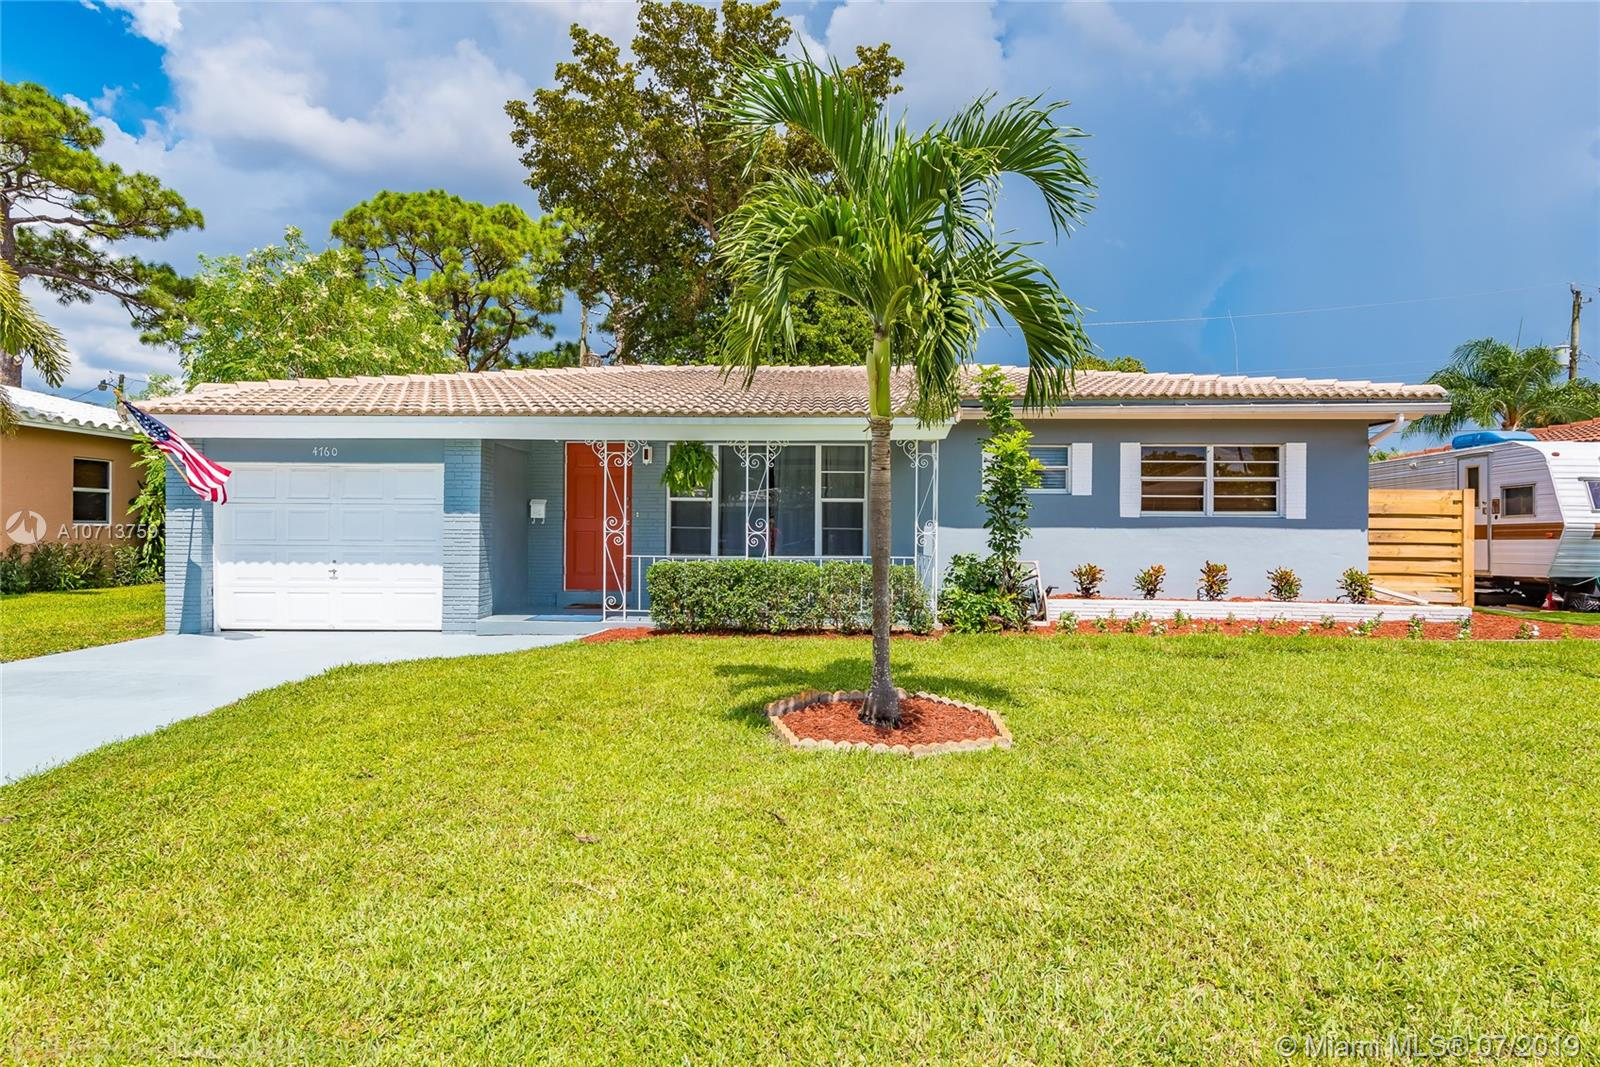 Beautiful home in the desired heart of Oakland Park. FEATURES: wood floors in all rooms & slate floors in the bathrooms and laundry room. Solid CBS construction with a beautiful barrel tile roof, a spacious screened in porch with a patio barbecue area, large fenced in yard with plenty of room for a large pool, and front porch with room for chairs and tables. Large laundry room with enough room for a full bathroom combination laundry room if desired. It has a huge oversized one car garage that could easily be converted into a large 3rd bedroom.The air conditioner was replaced end 2018, and was upgraded to a 3.5 ton unit. House was recently painted inside and out, and is tastefully landscaped. Don't miss this charming home in a great neighborhood!  12-2